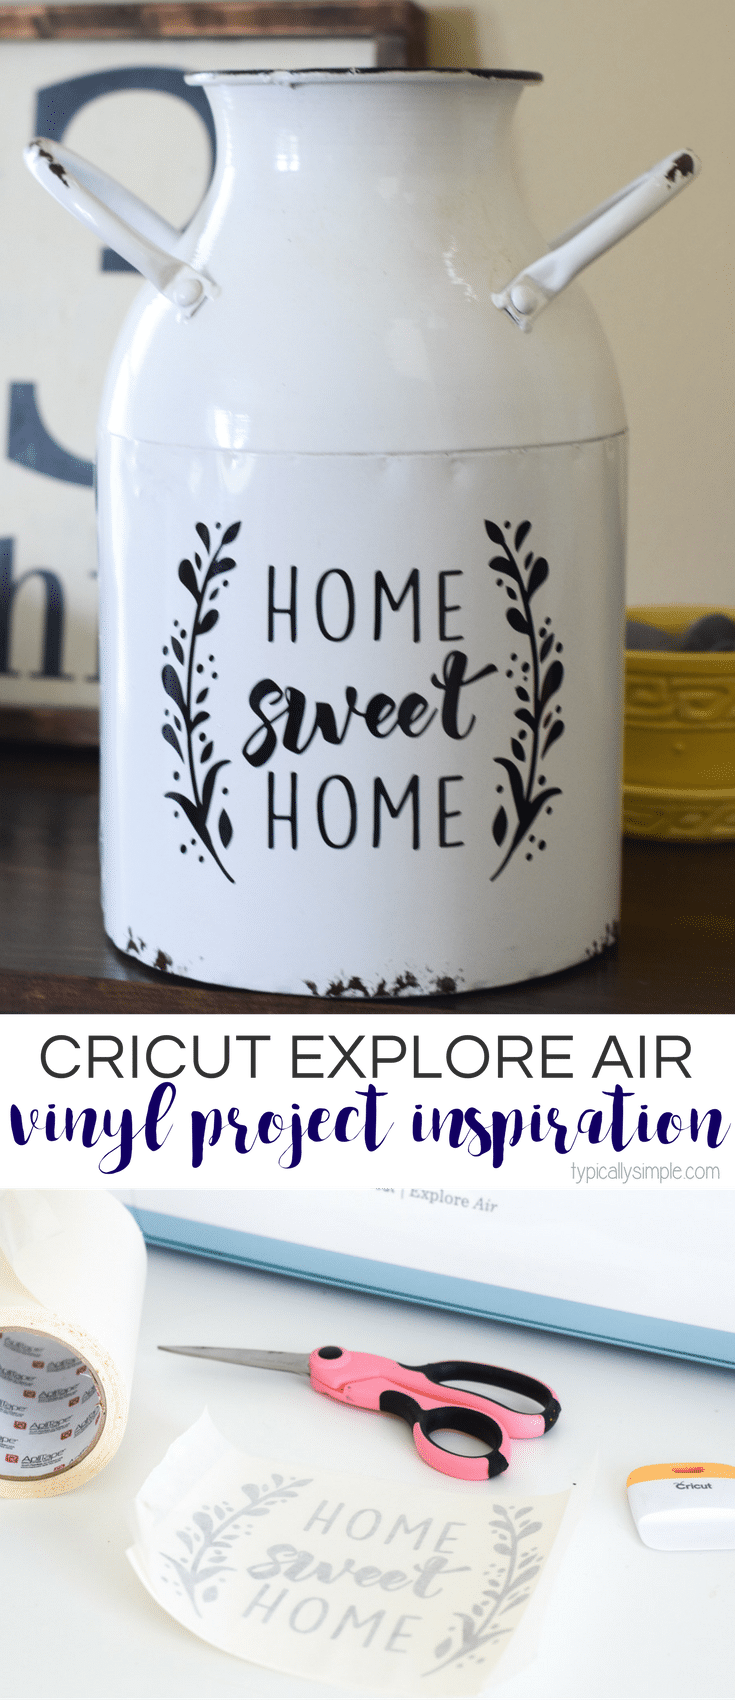 Cricut Home Decor Well Thanks To Cricut This Is Not A